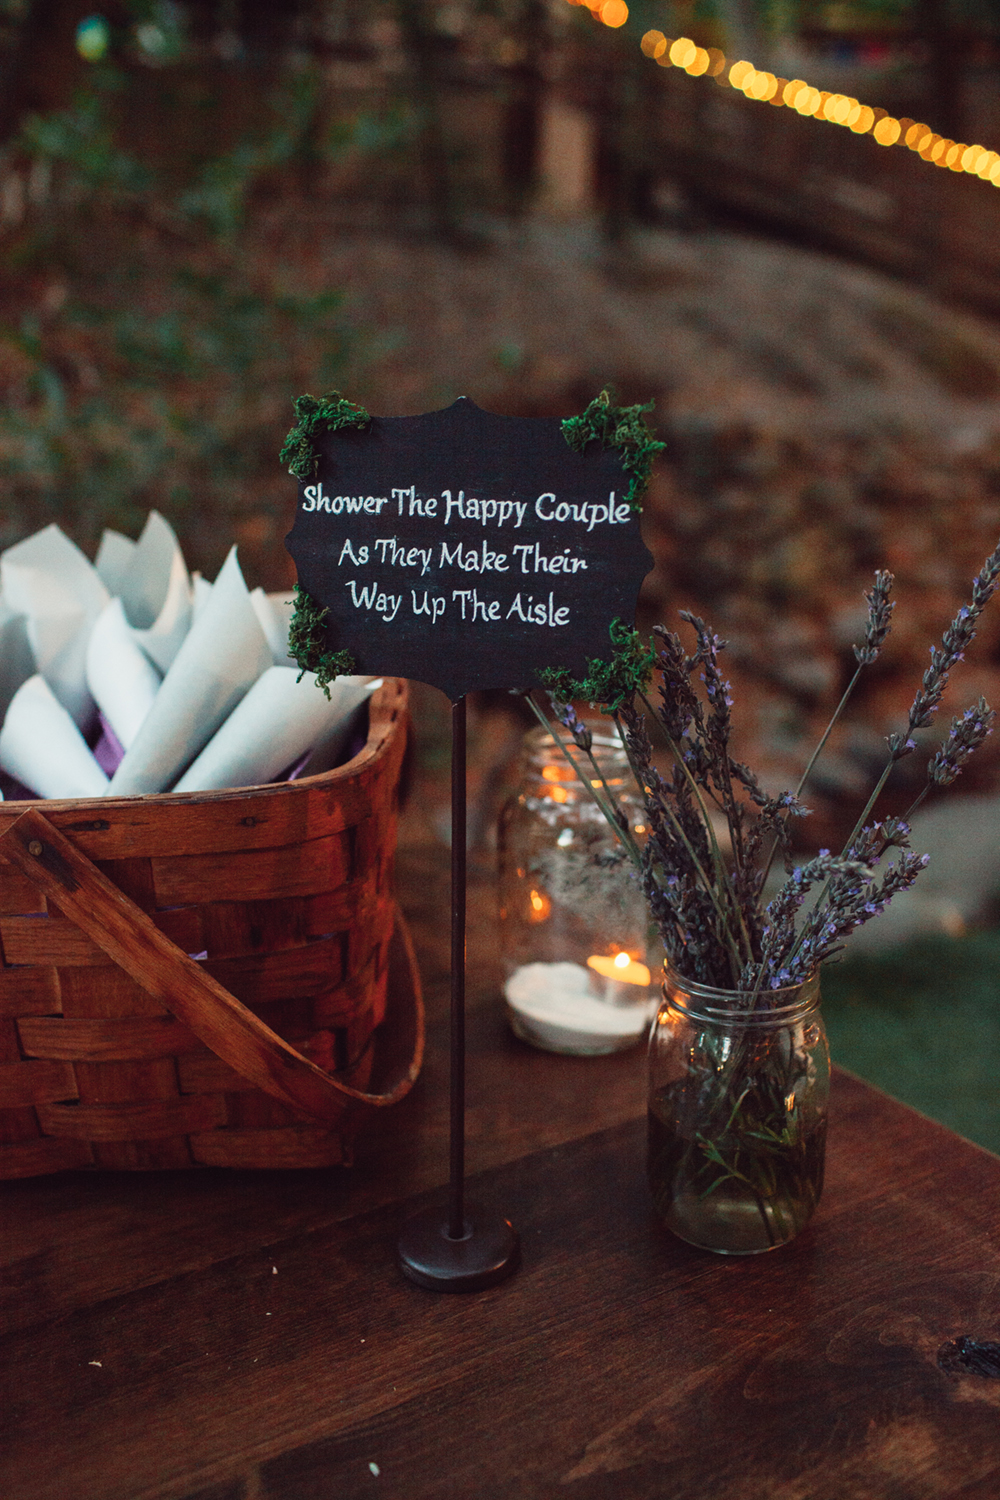 Saratoga-Springs-Outdoor-Rustic-Wedding-Details-11.JPG